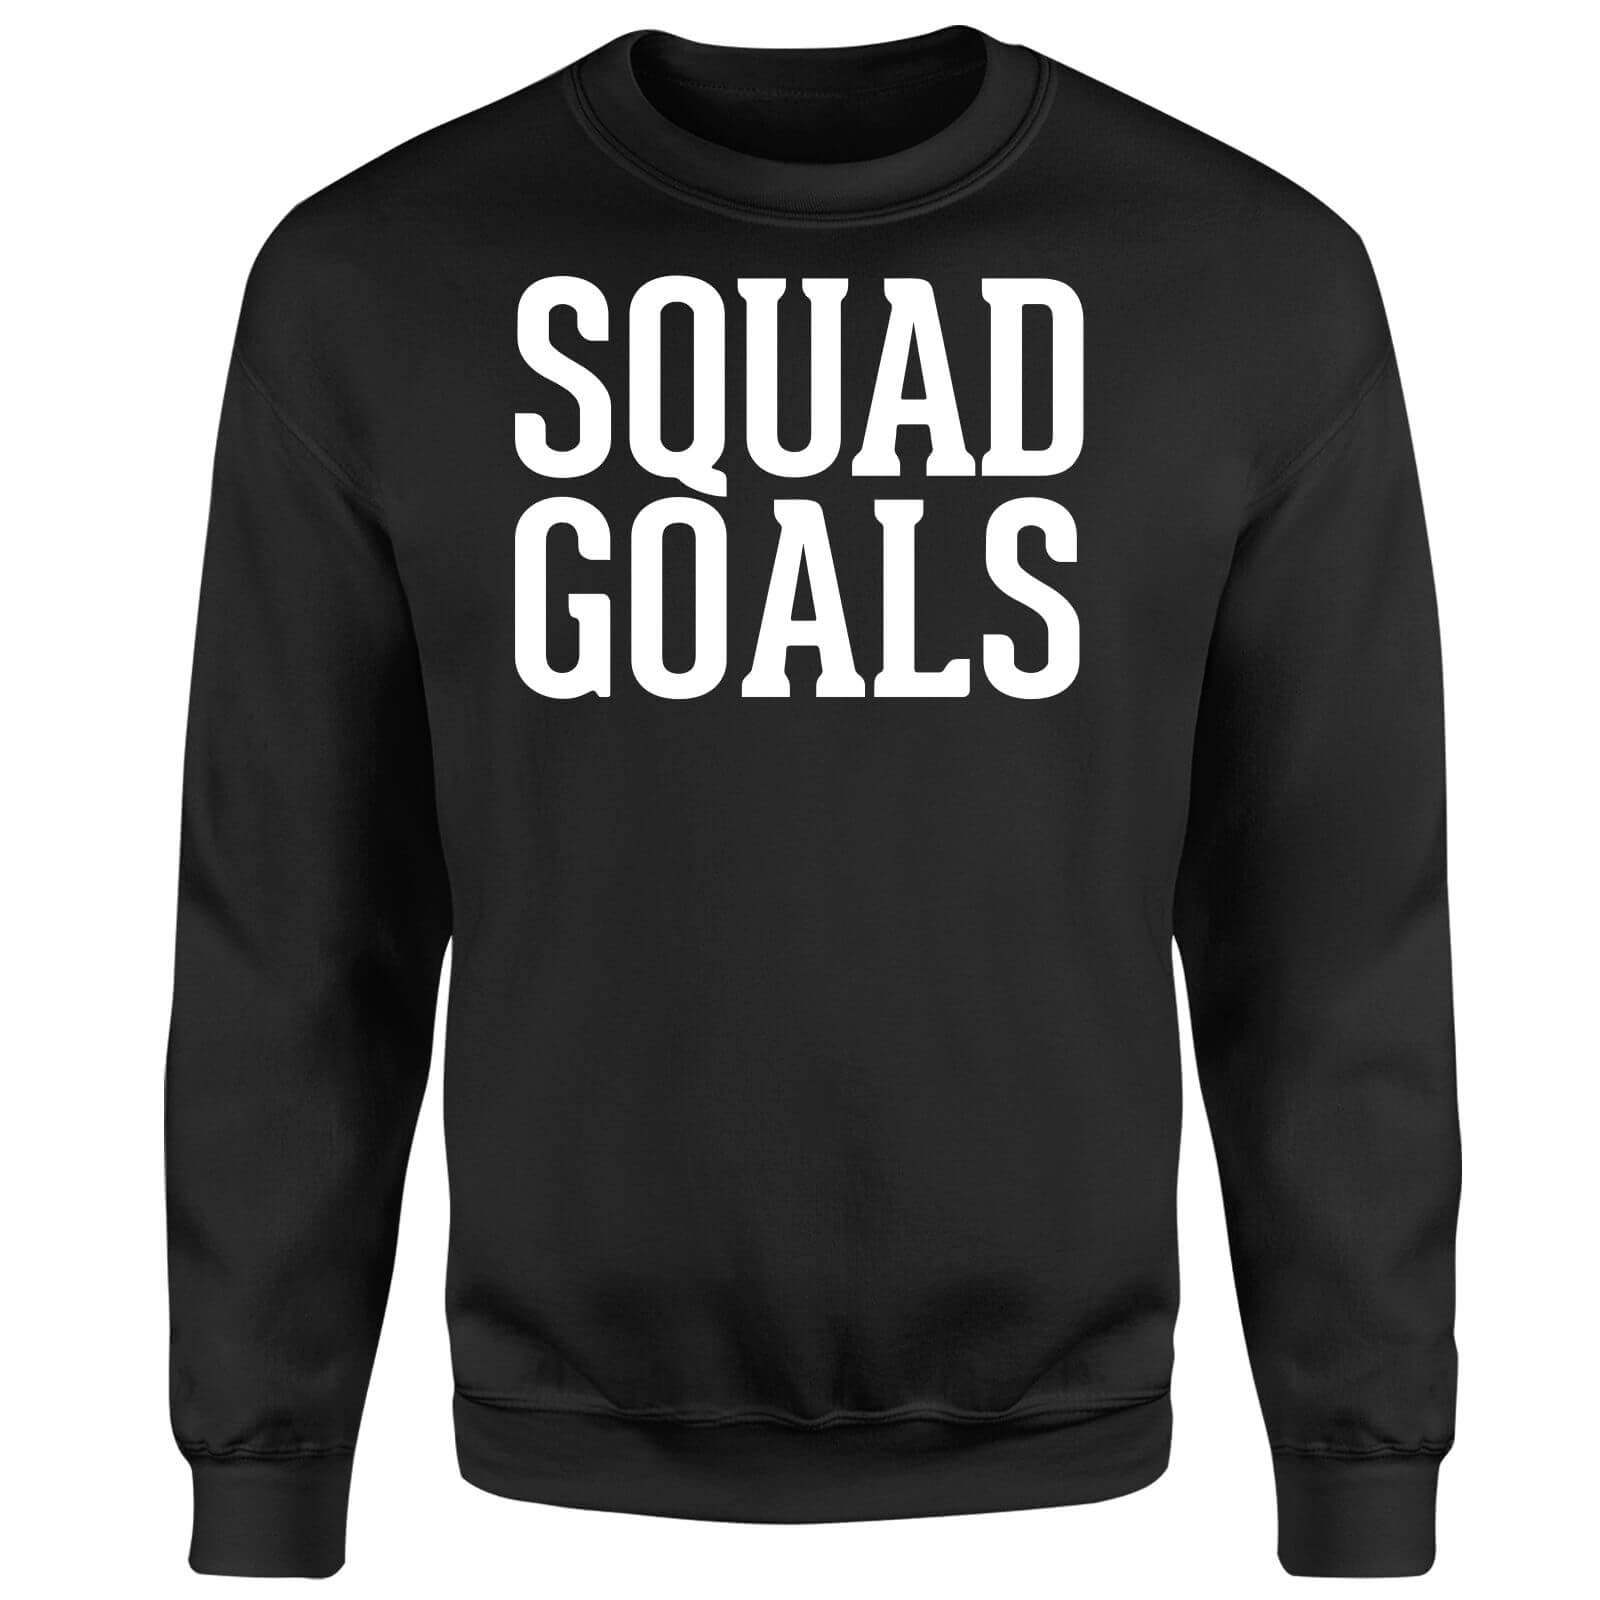 Squad Goals Sweatshirt - Black